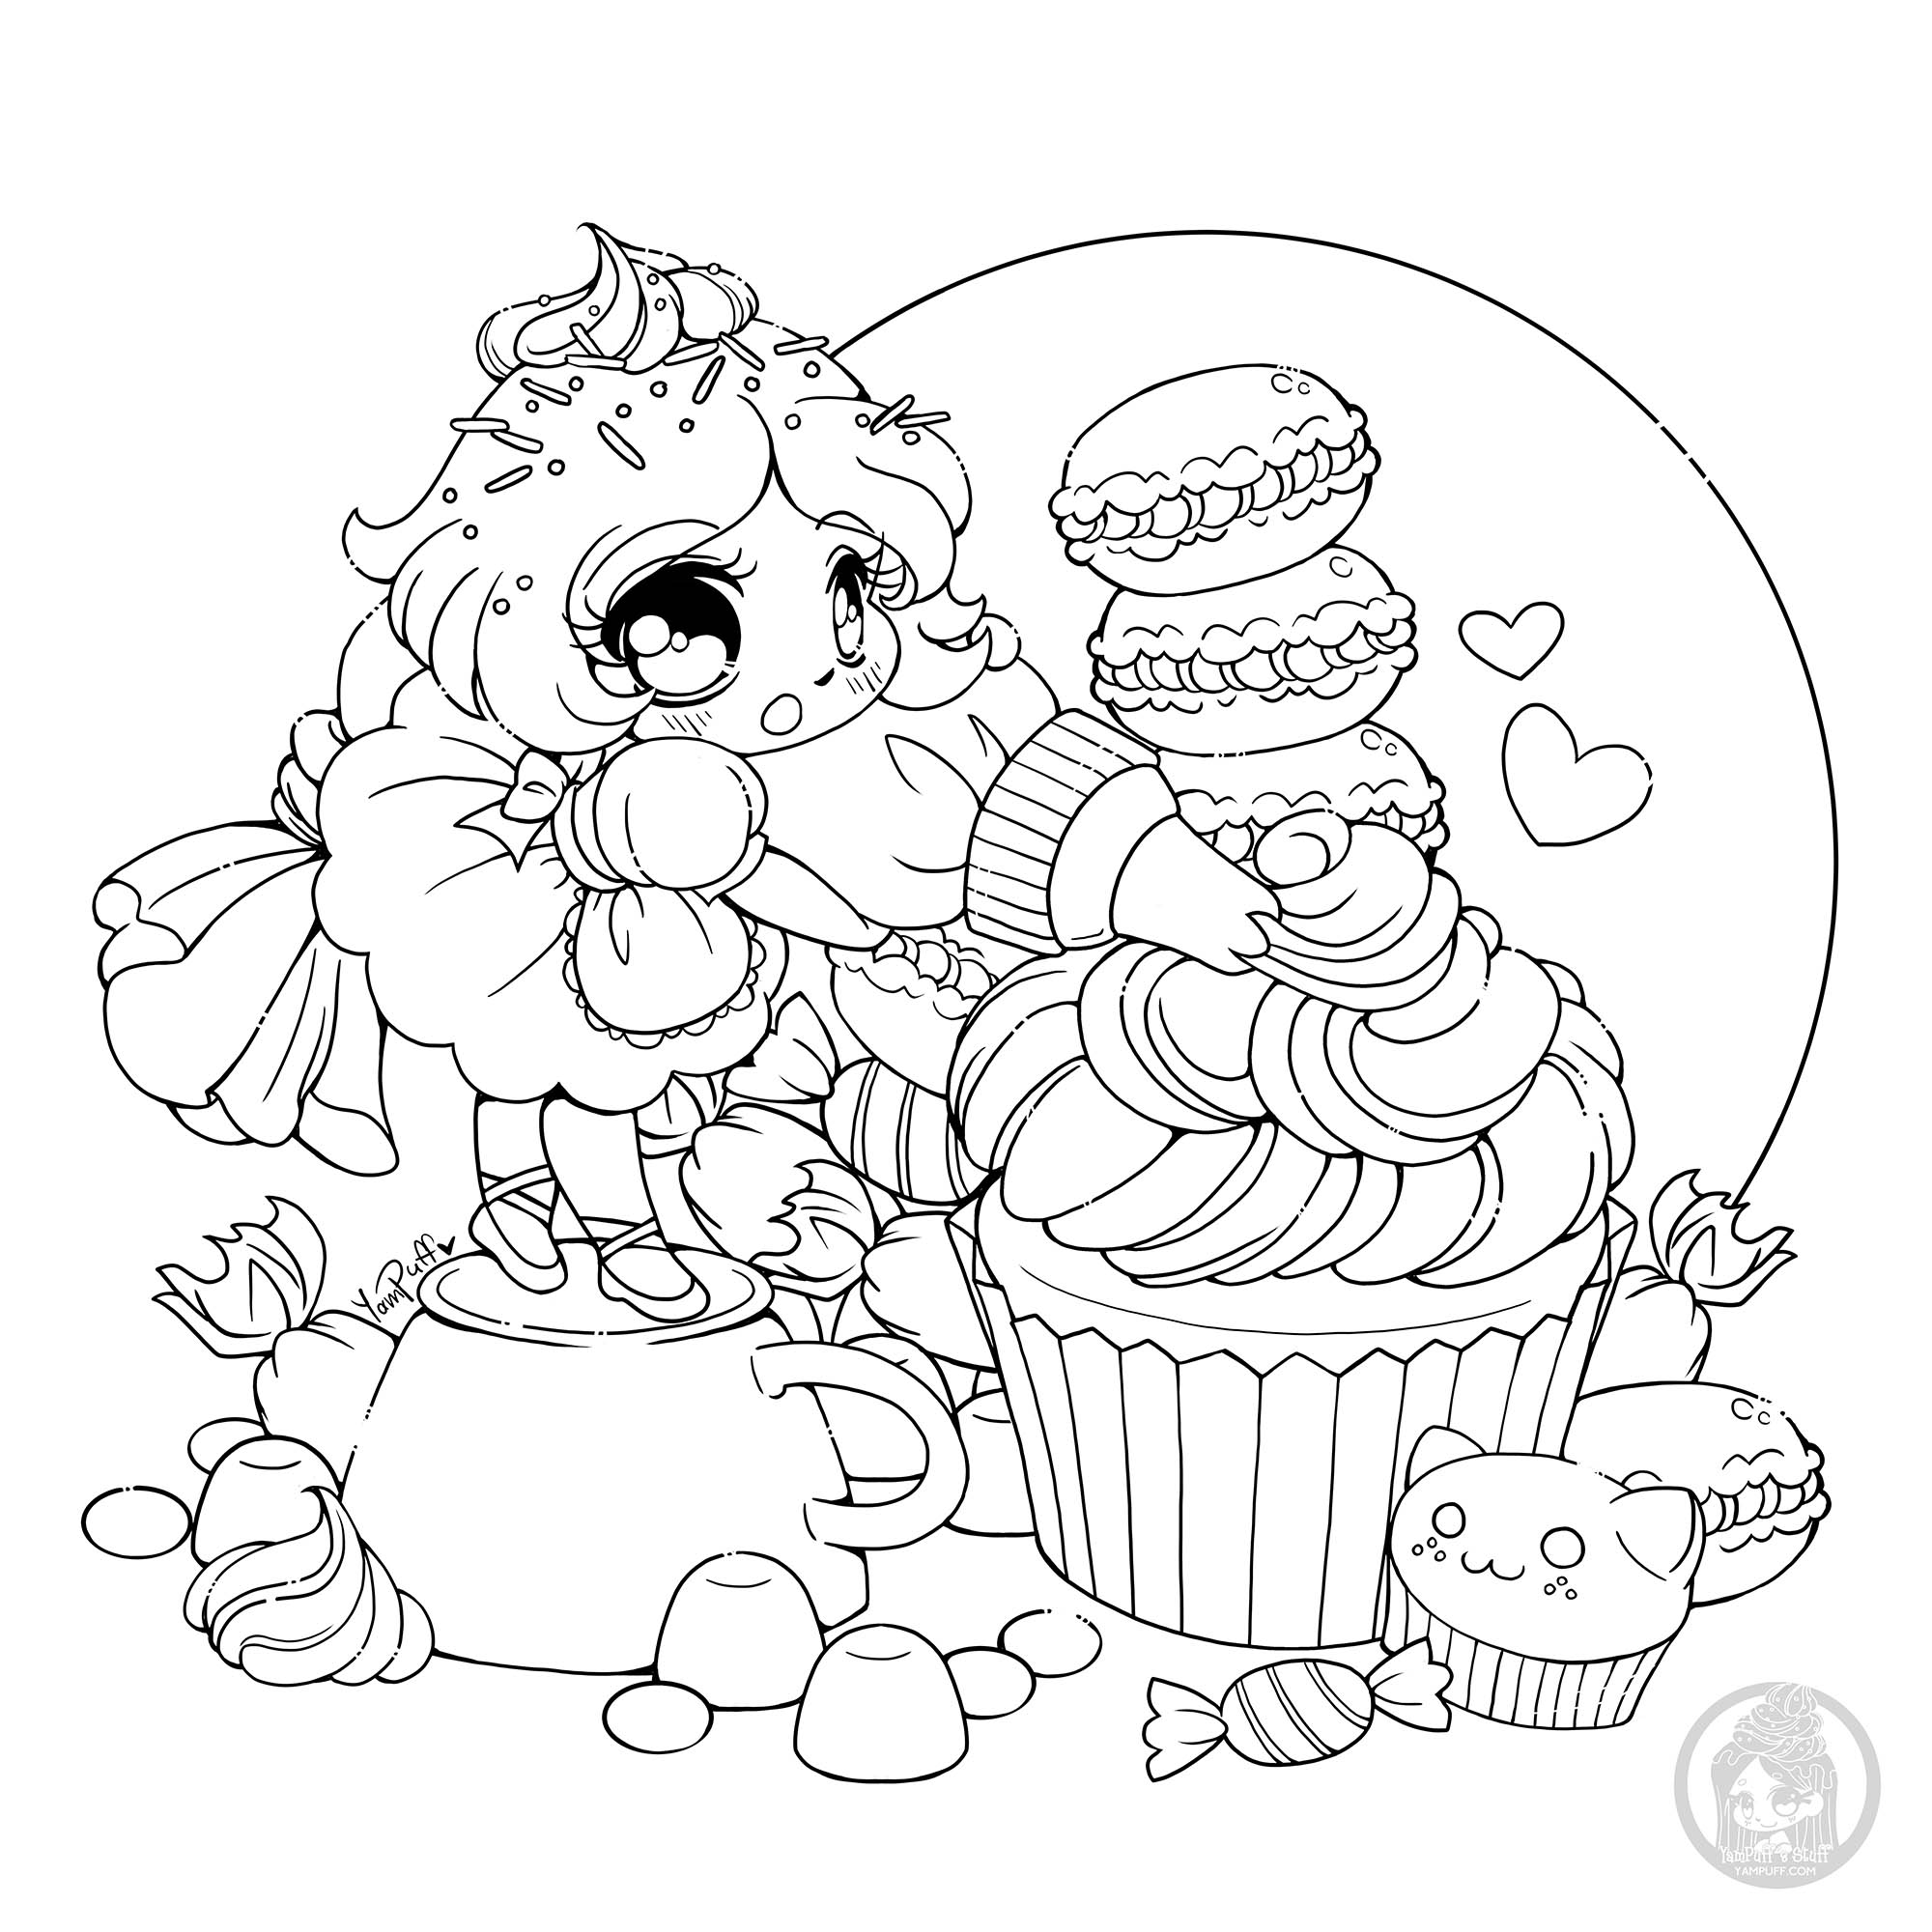 Frosting fairy - Cupcakes Adult Coloring Pages